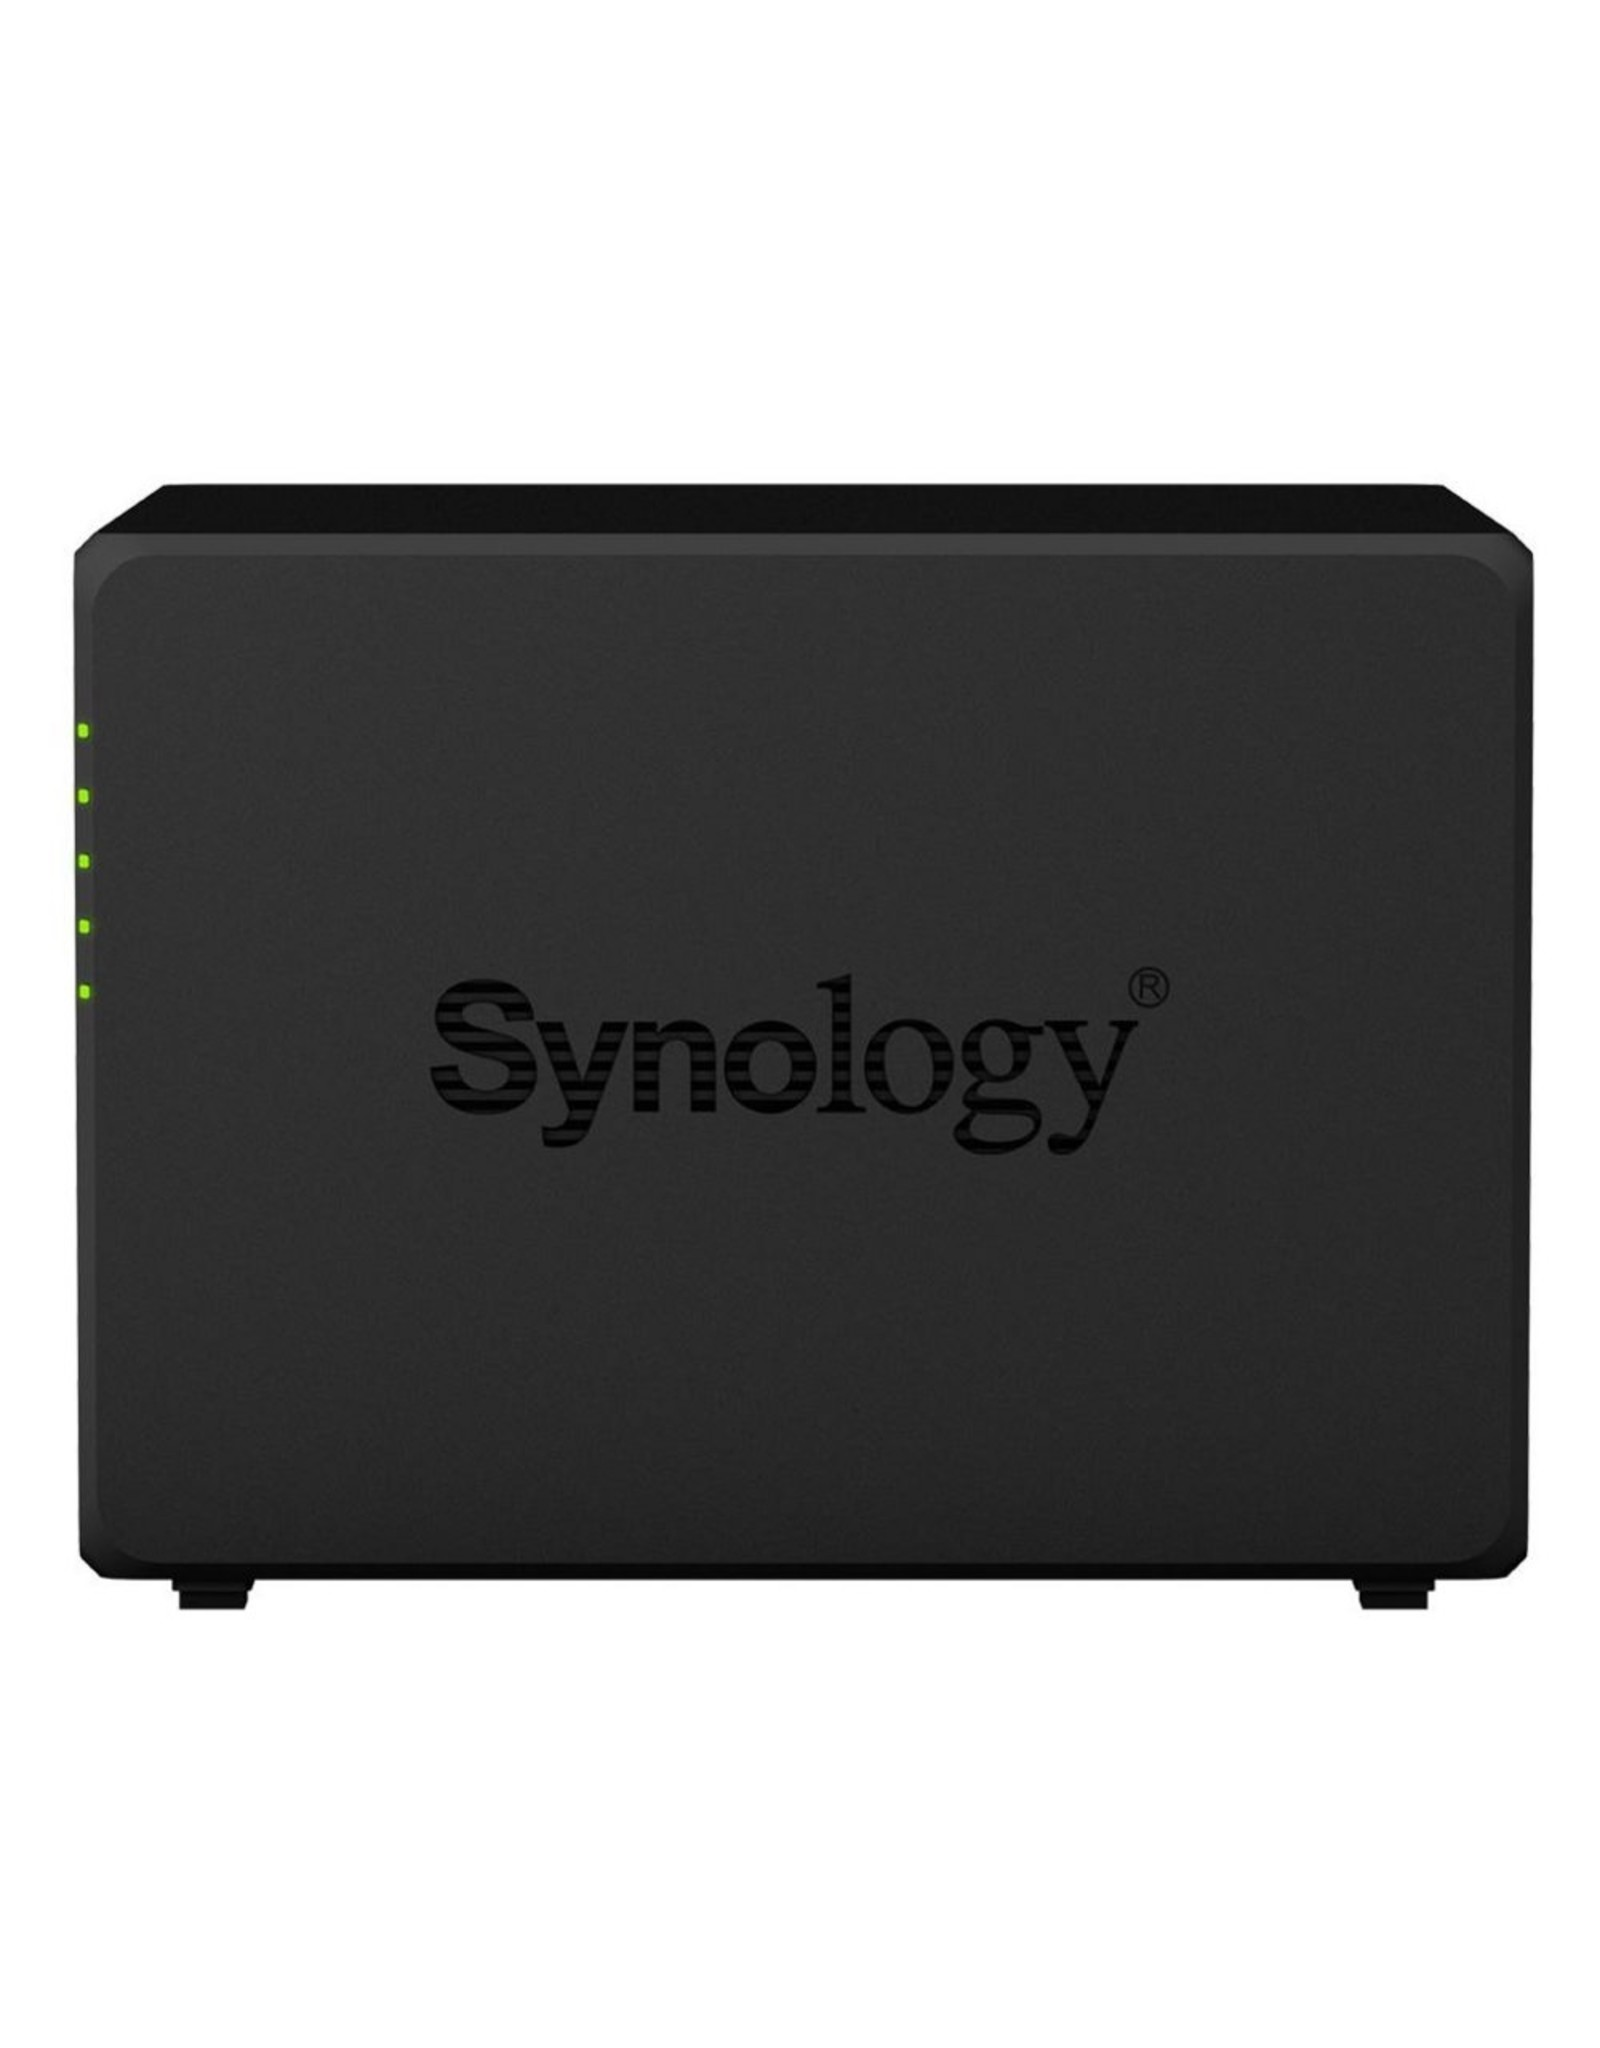 Synology Disk Station ds418 NAS